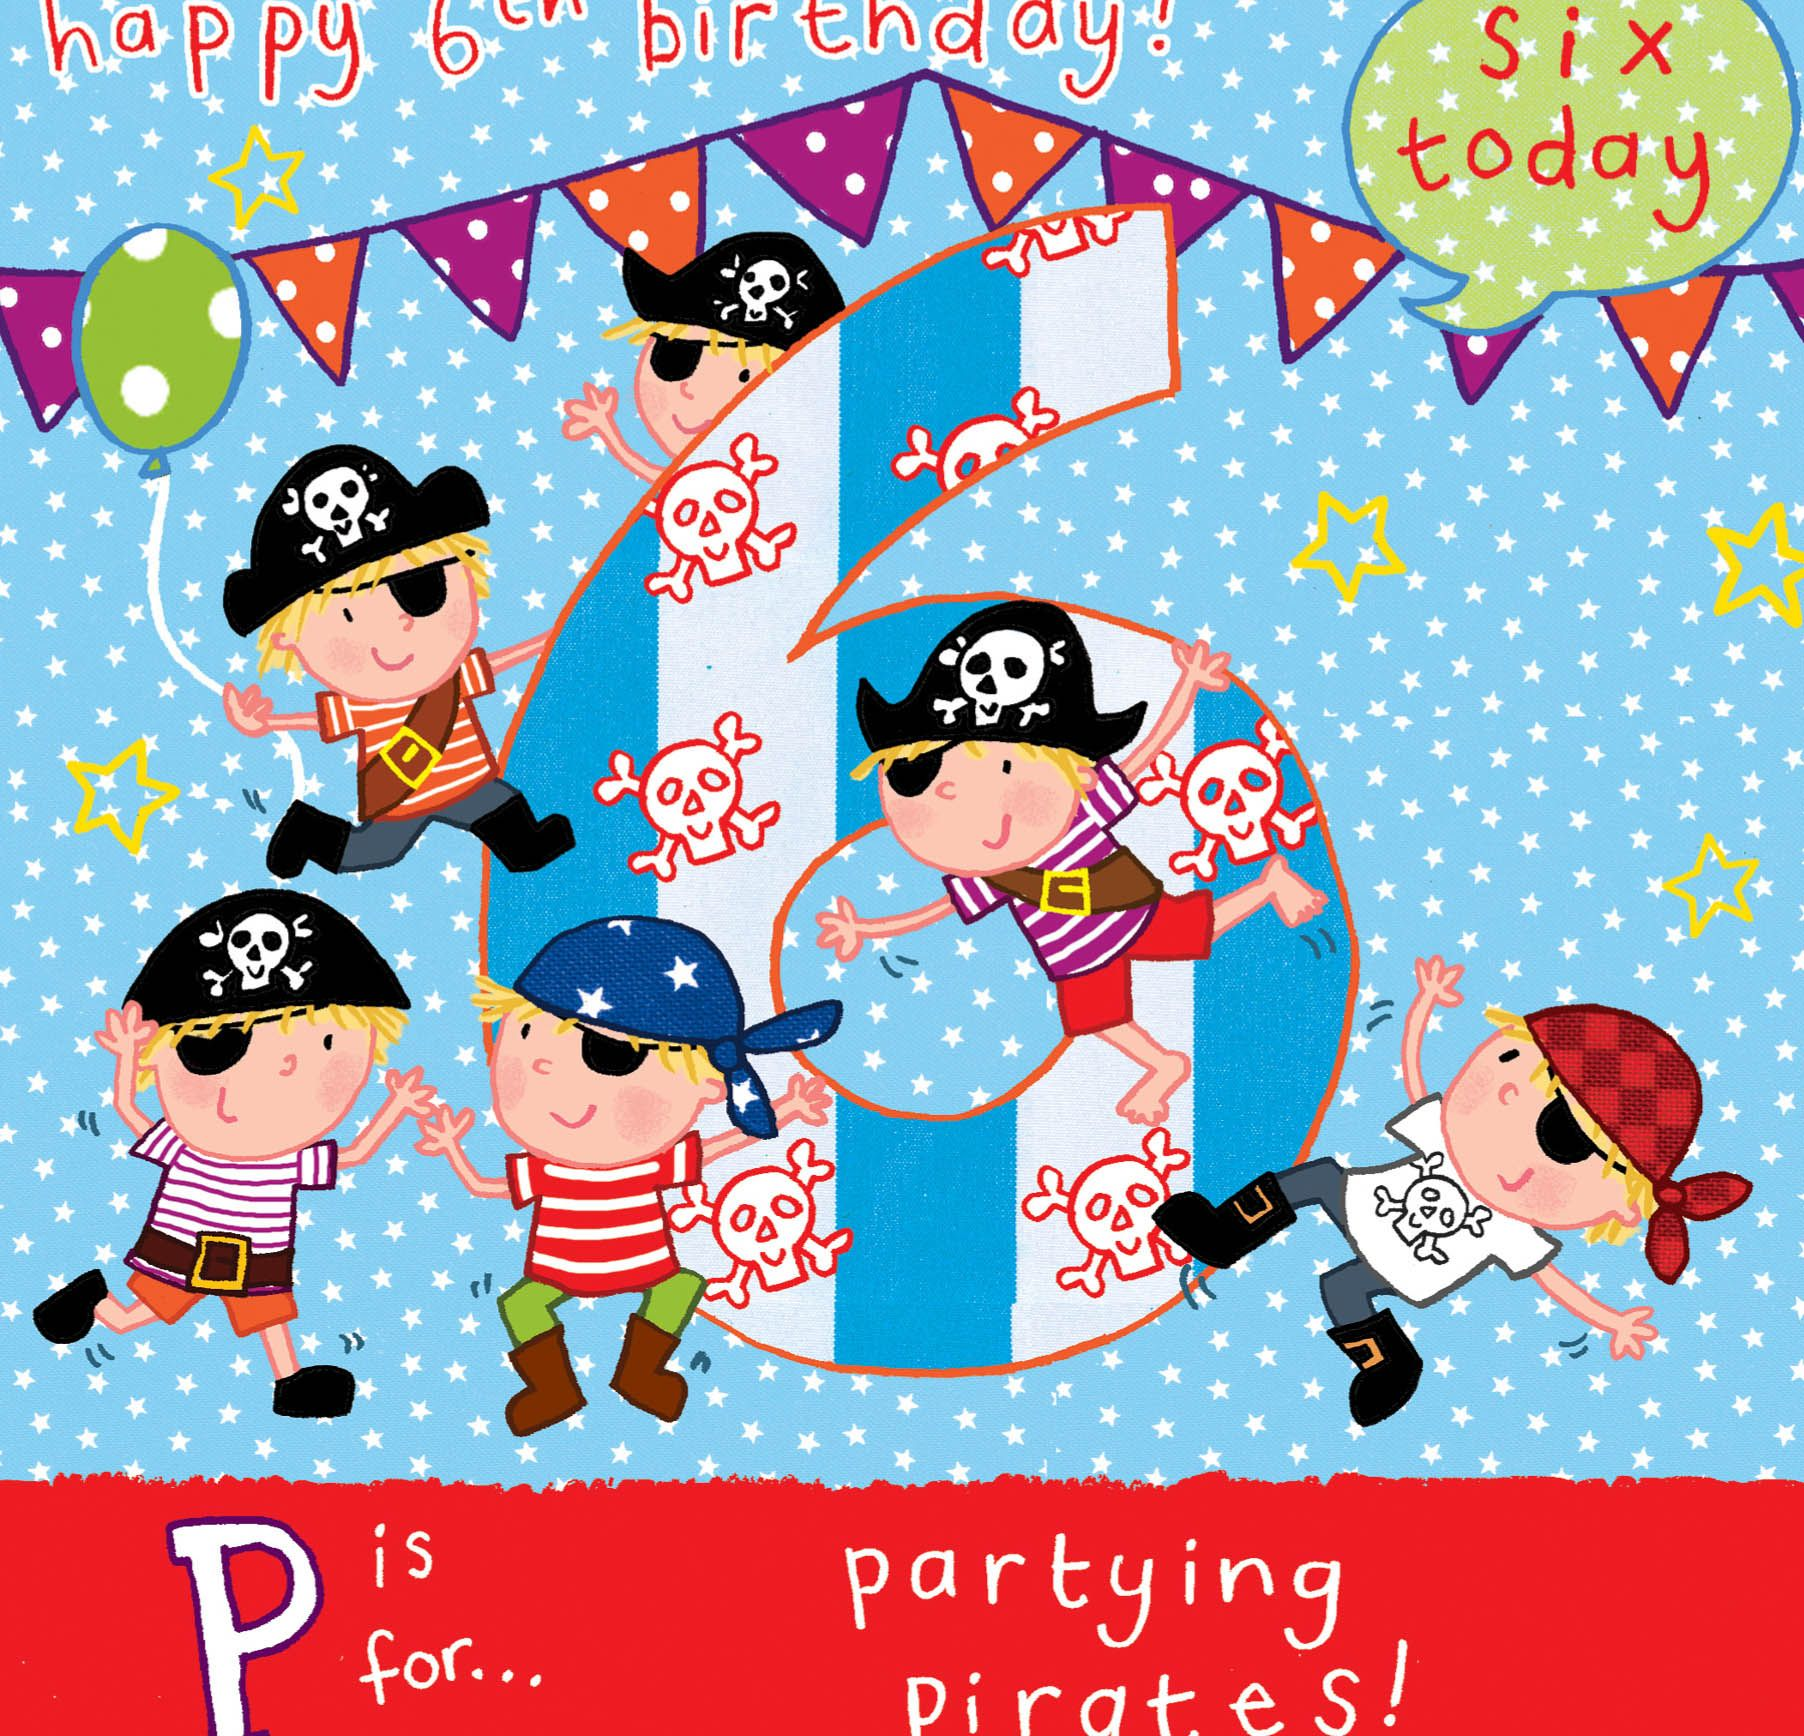 Age 6 Milo Happy Birthday Card Age 6 Boys Birthday Card